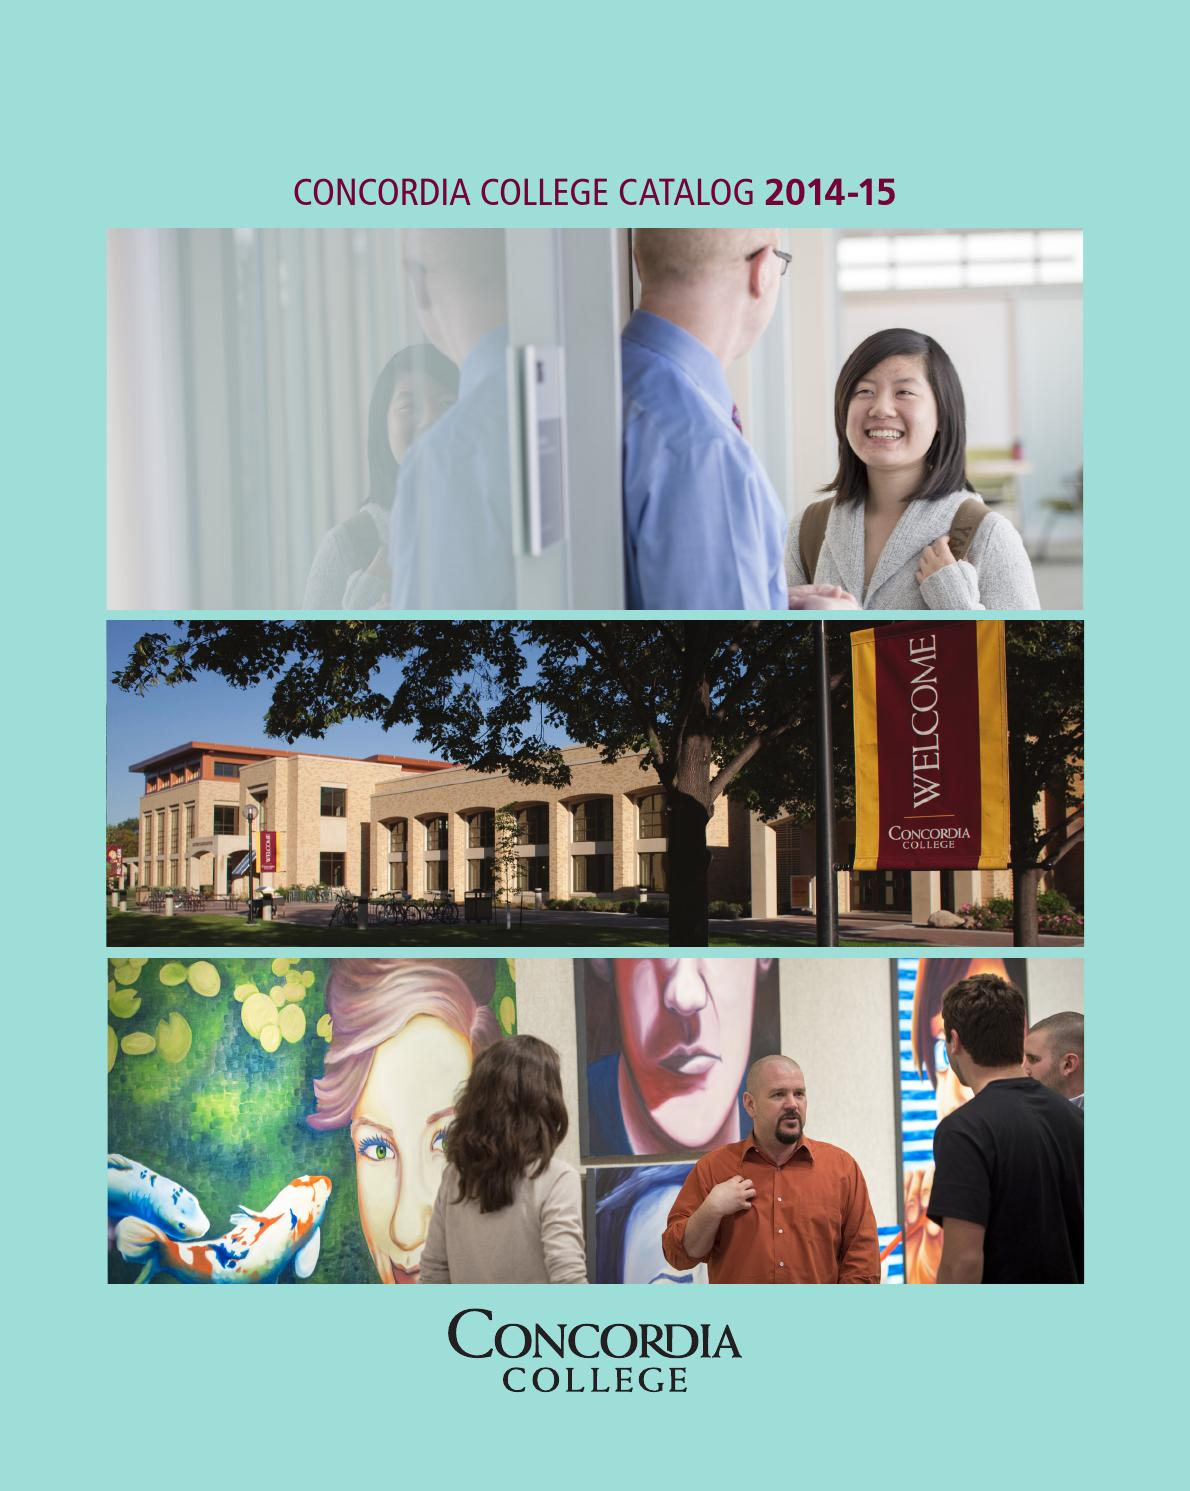 mercyhurst university 2014 2015 catalog by mercyhurst university issuu